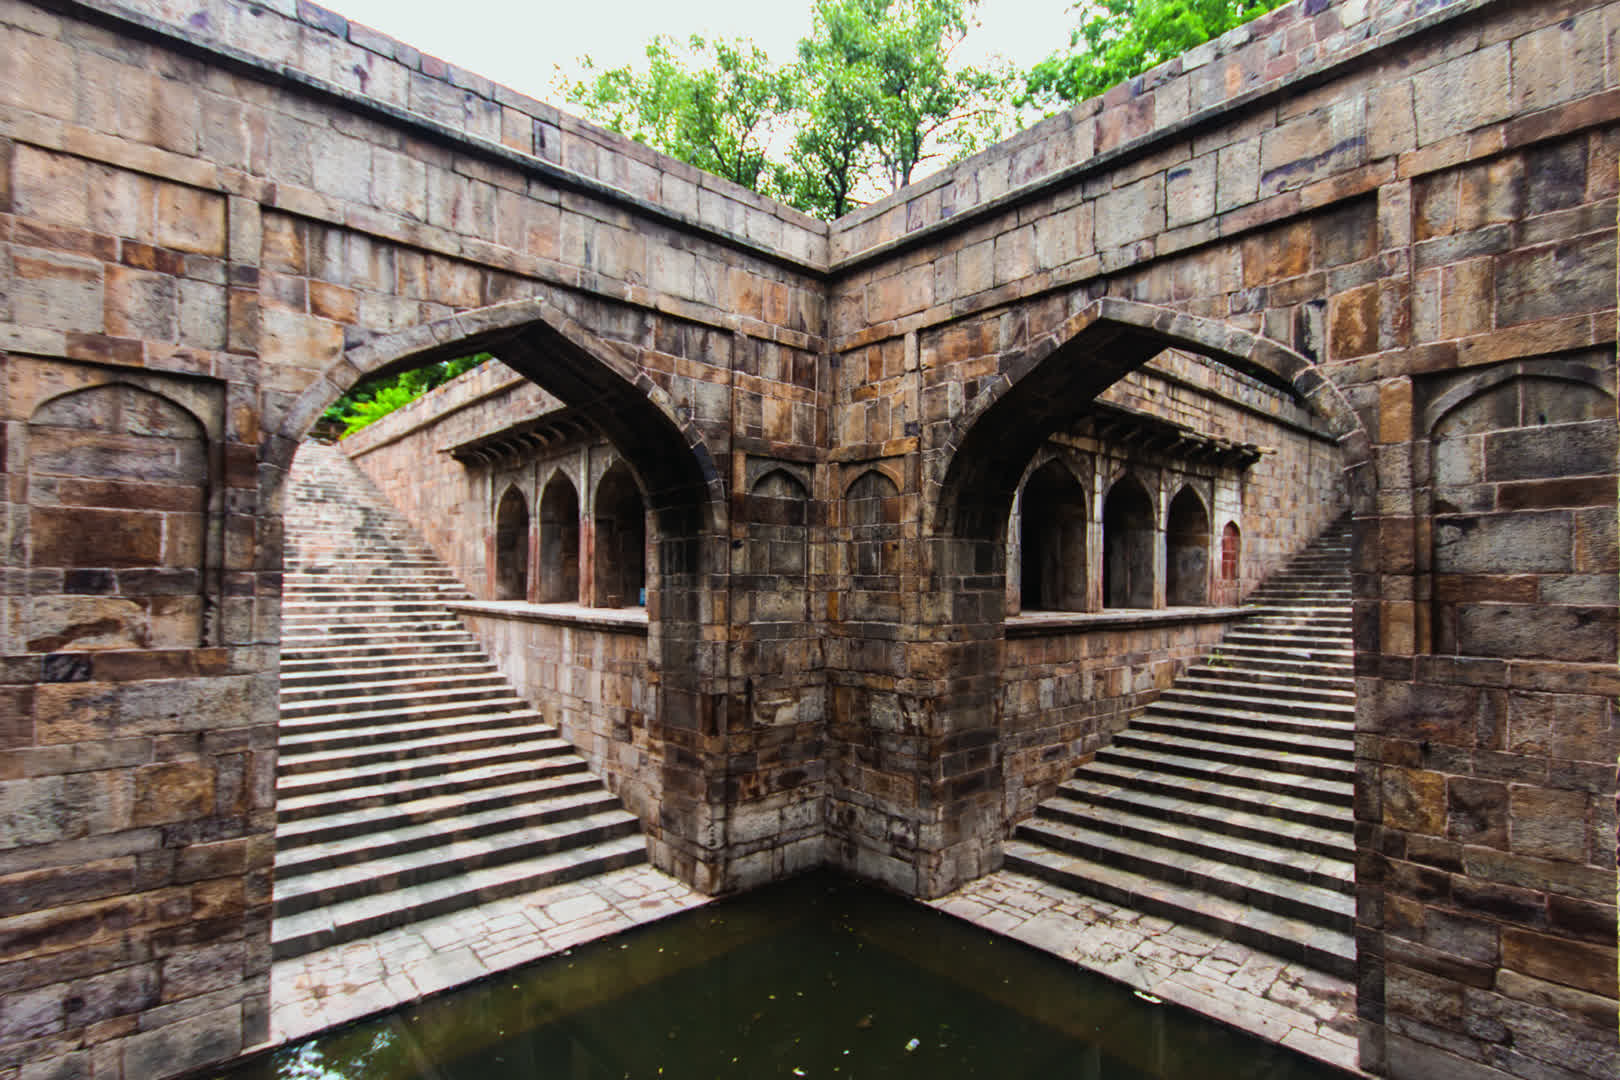 The Wonder Well of Red Fort